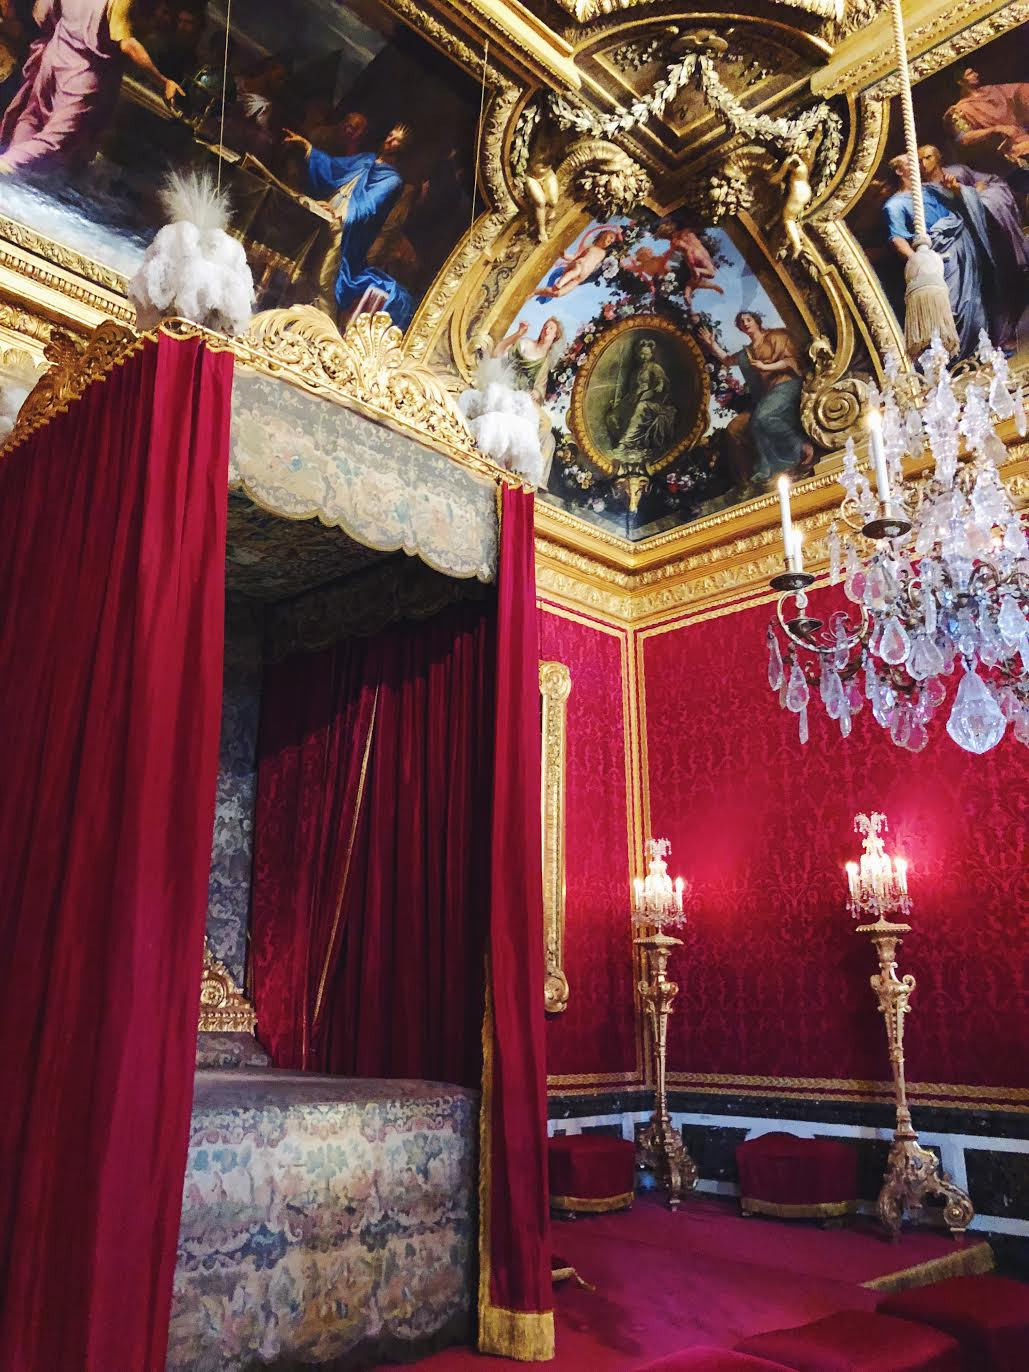 Muslim-travel-guide-Paris-Palace-of-Versailles-red-room.jpg